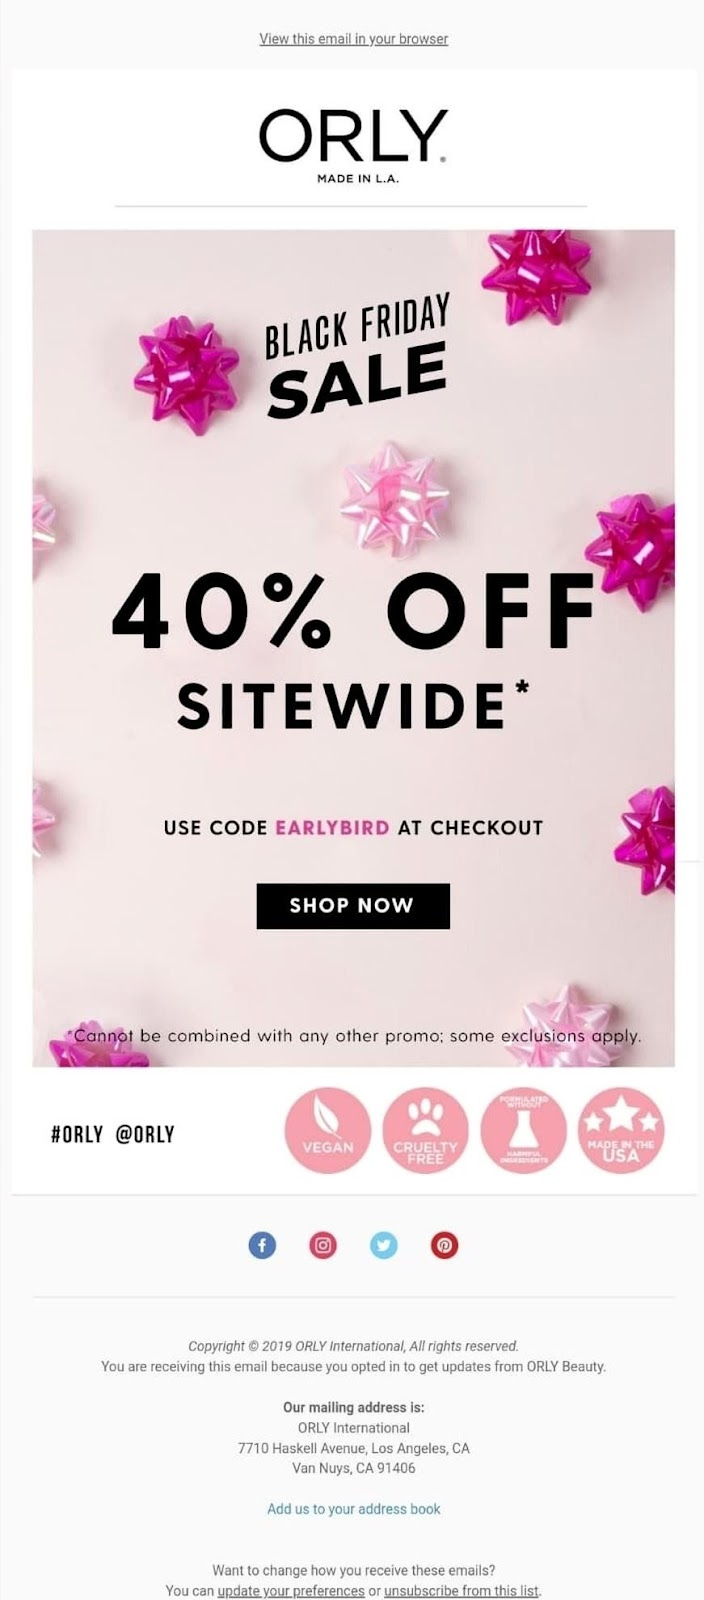 Orly email example